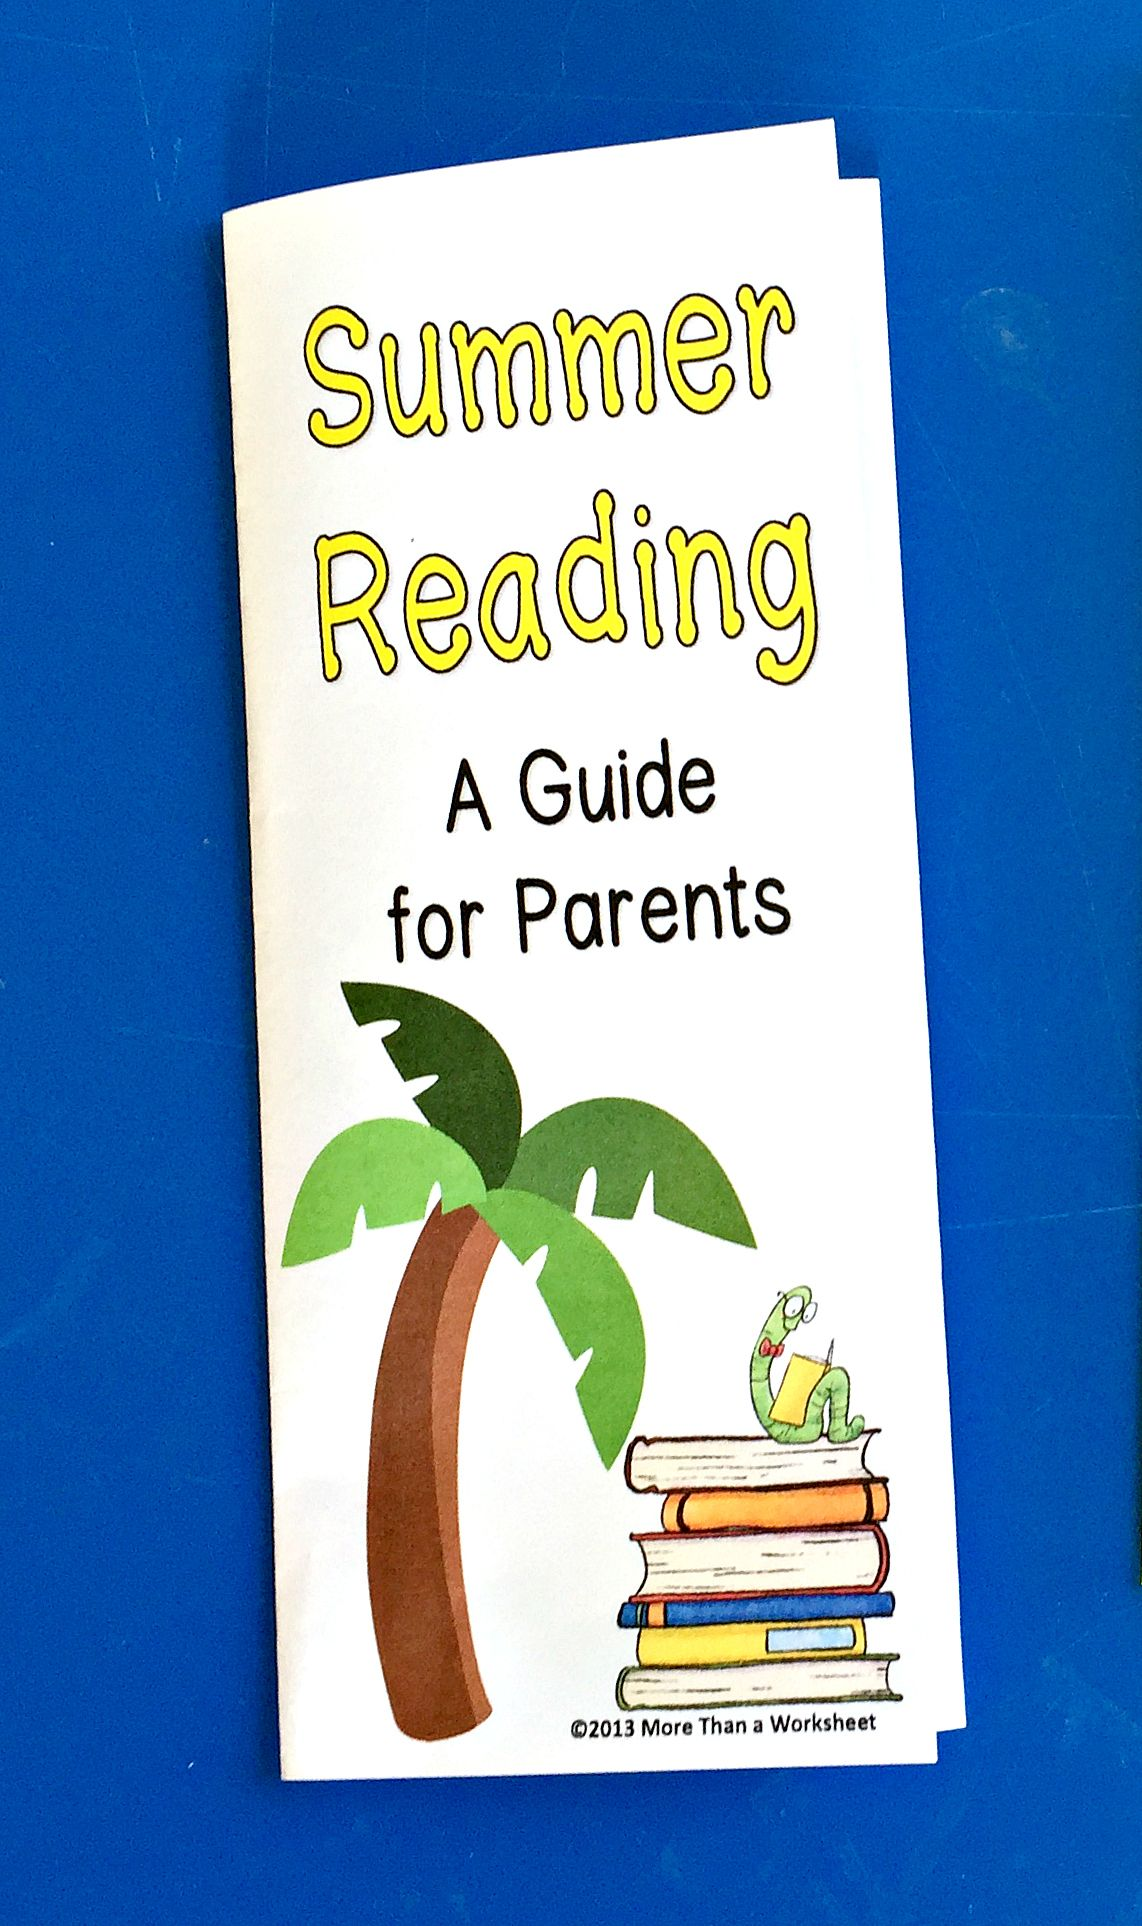 Summer Reading Brochure For Parents Free